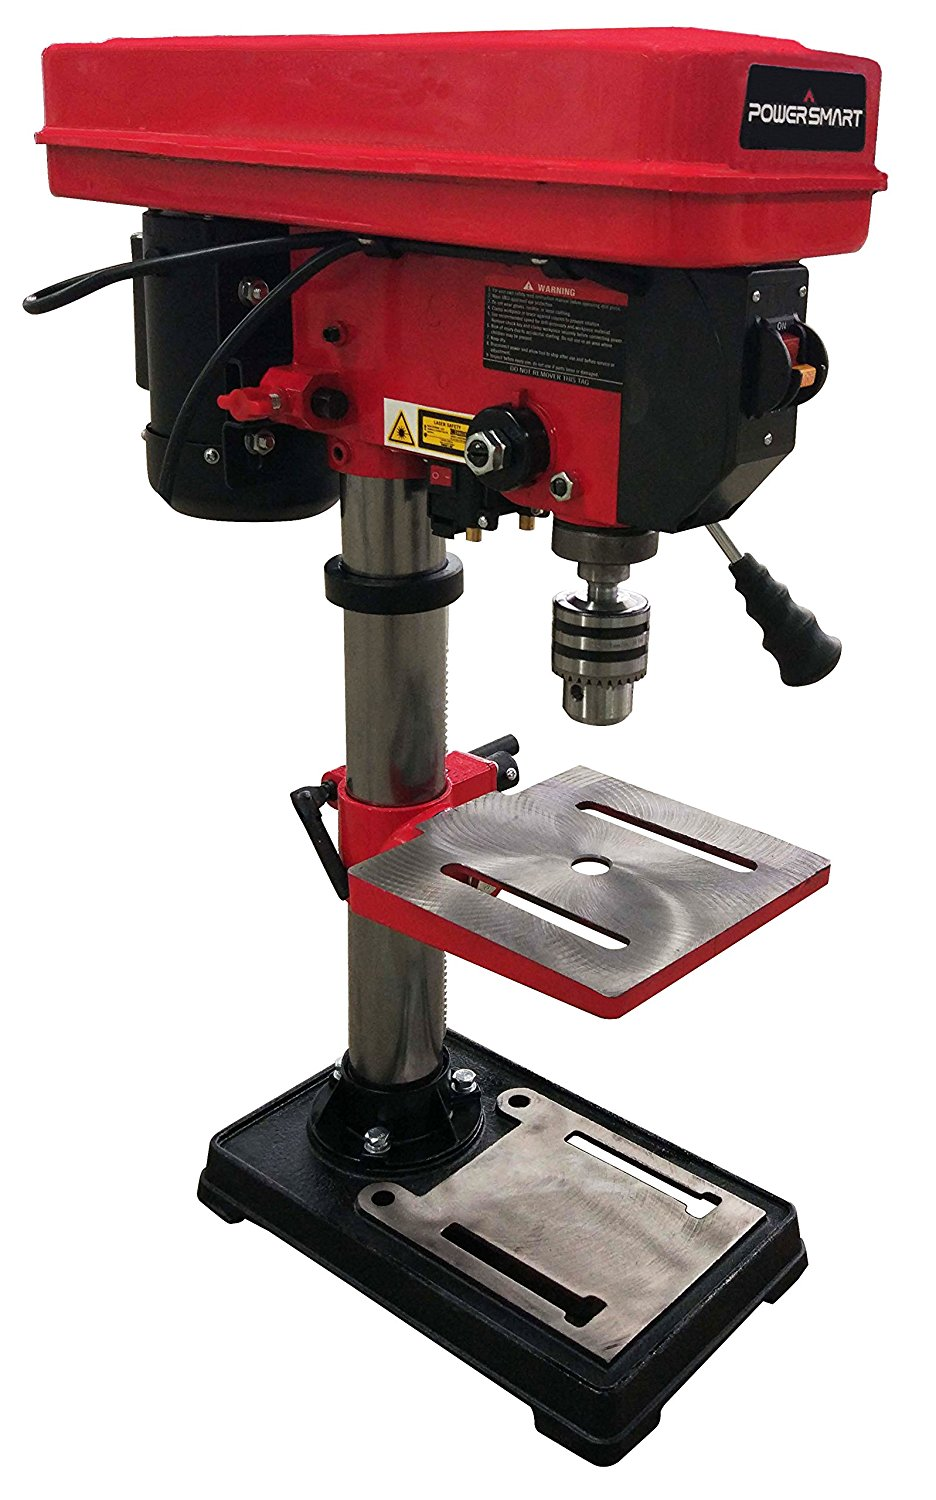 PowerSmart PS310 12-Speed Drill Press with Laser Guide, 10